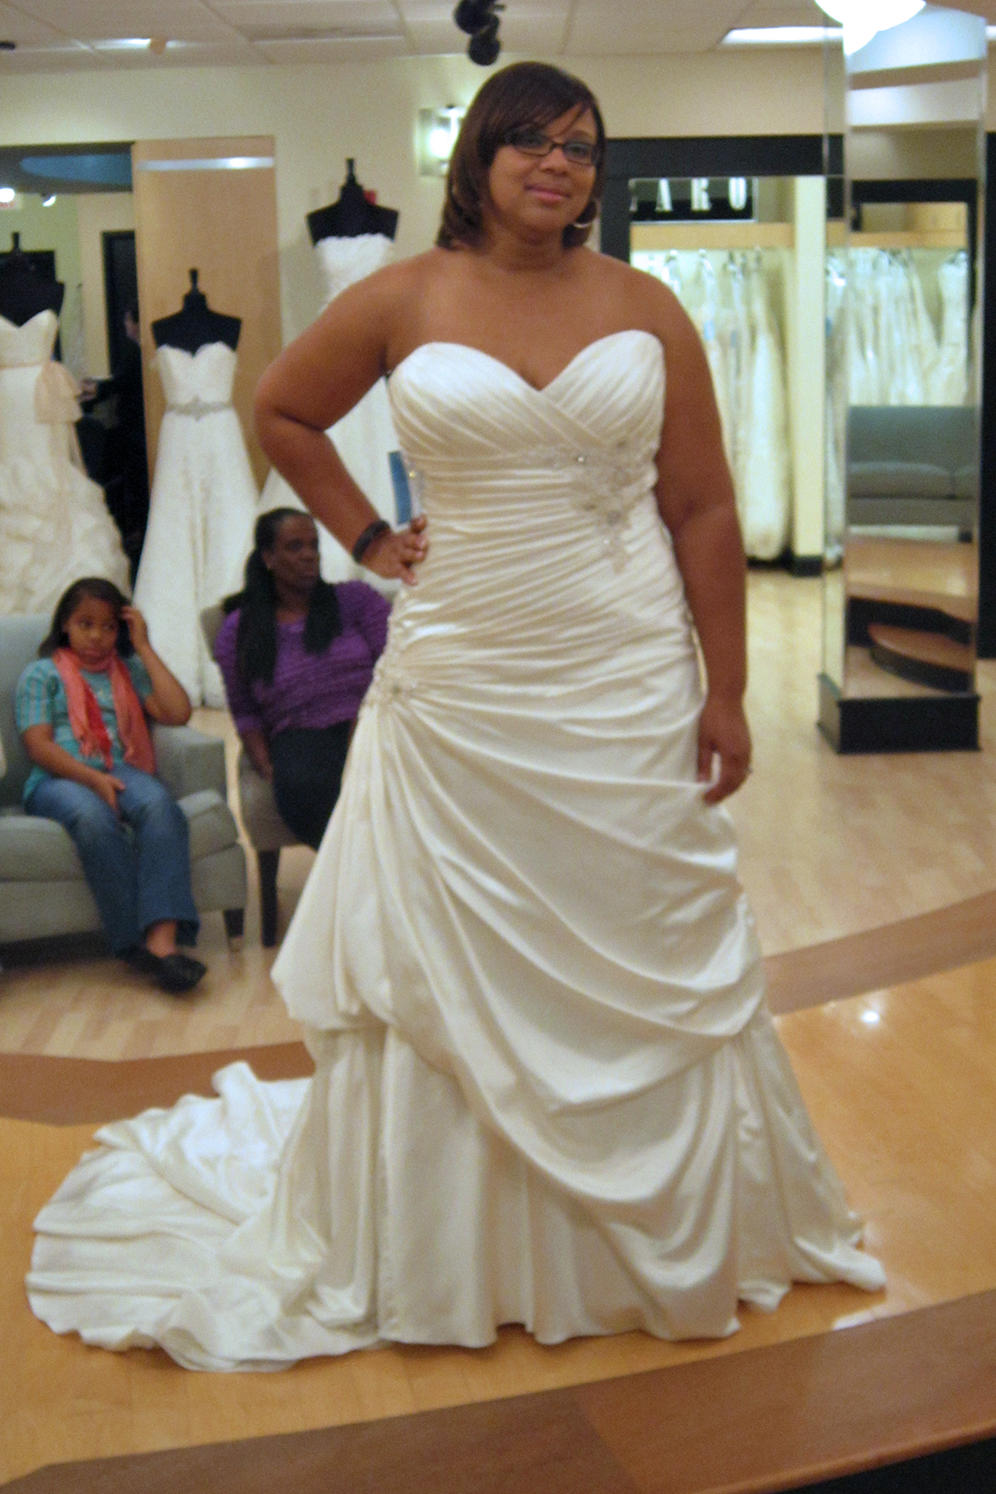 Season 7 Featured Wedding Dresses, Part 9 | Say Yes to the Dress ...